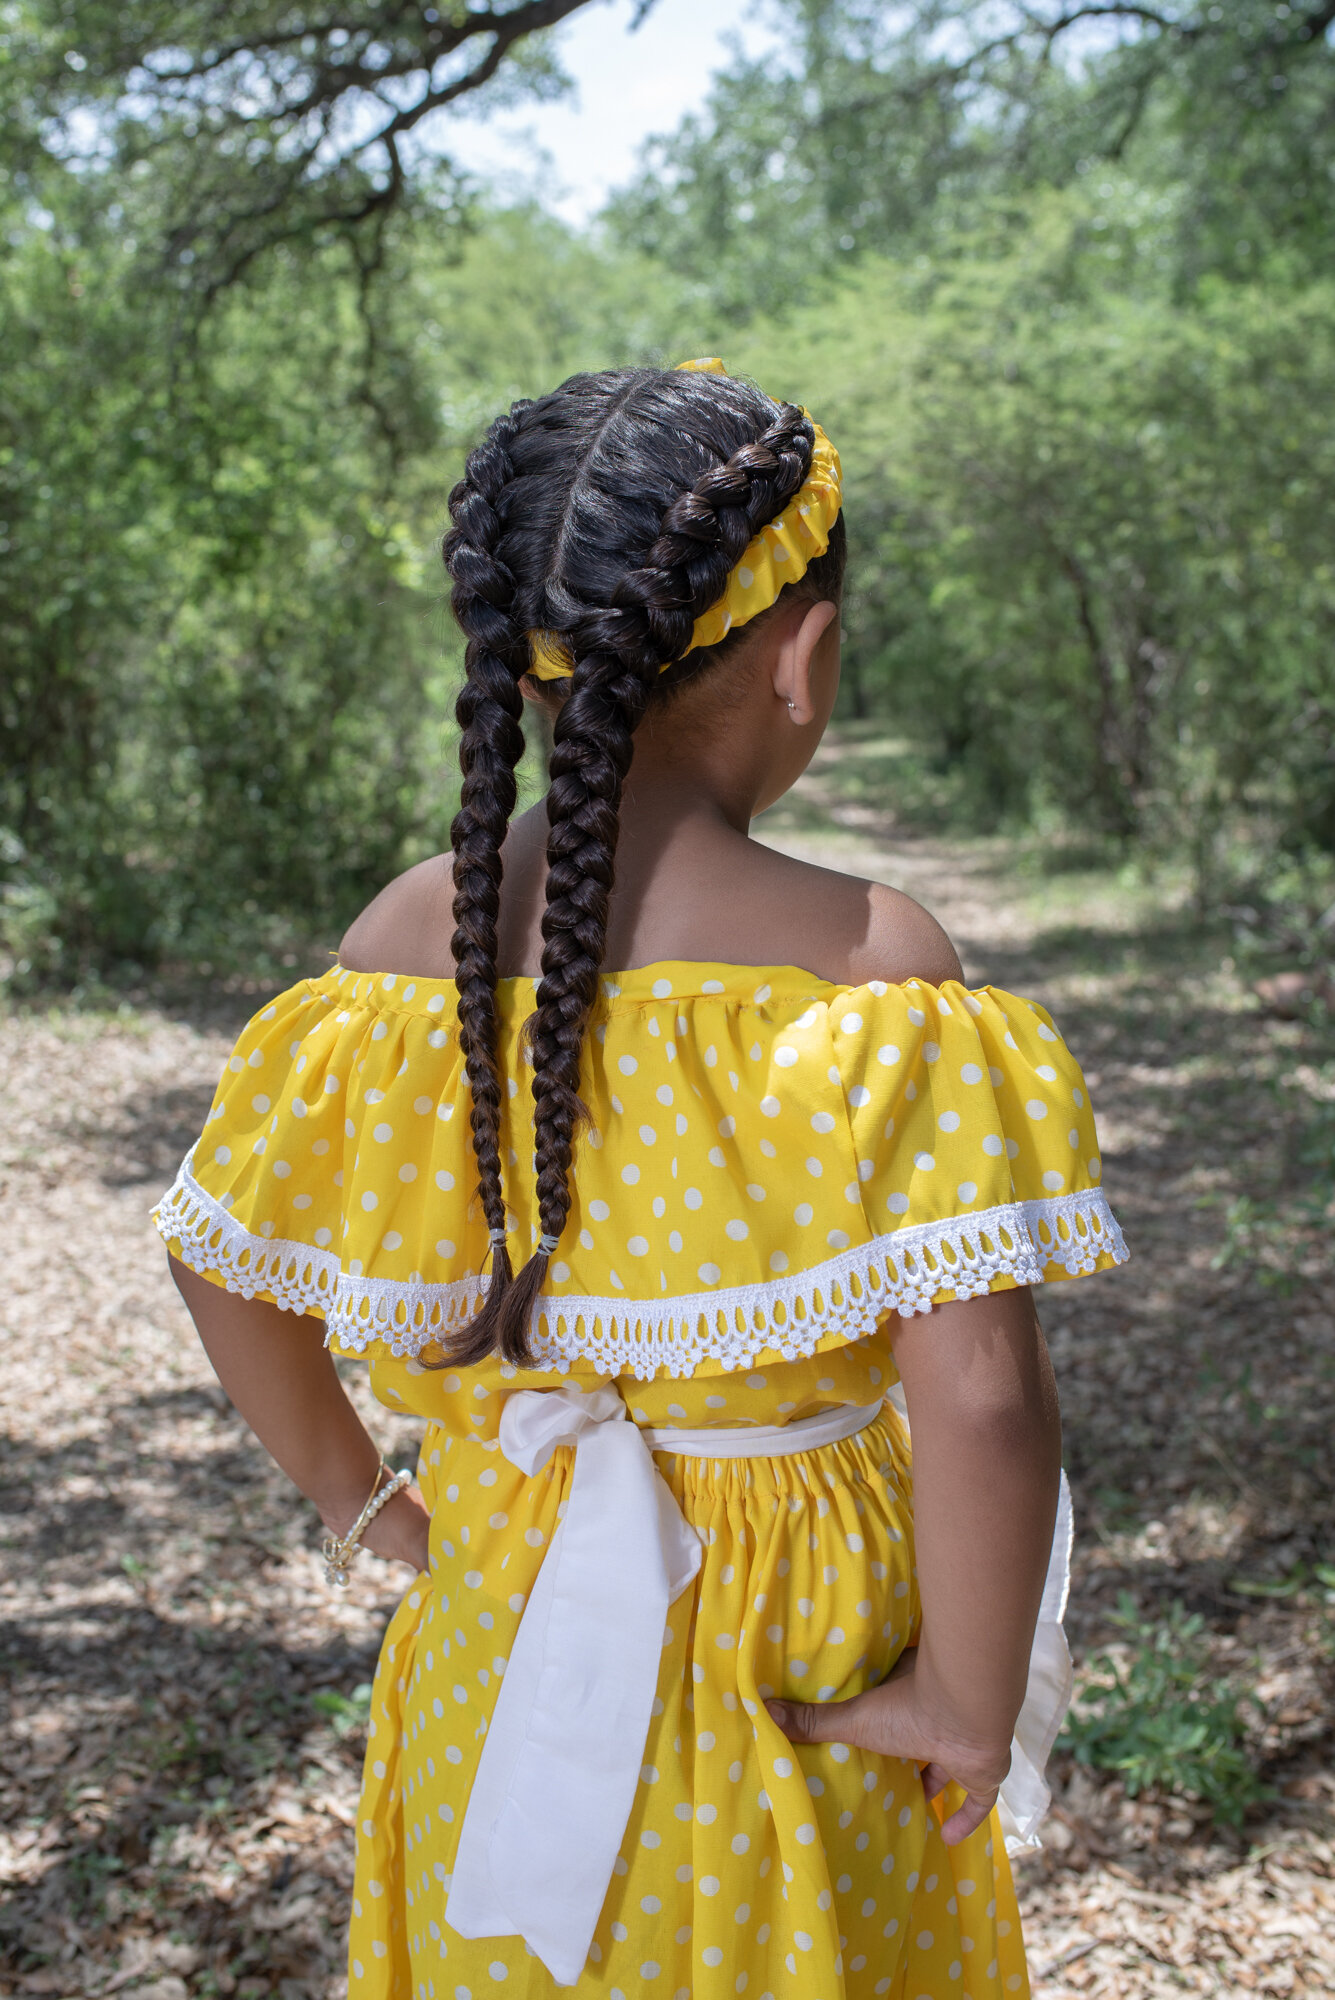 Maria, 6 years old, poses for a portrait wearing the typical Mascogos outfit, during Juneteenth celebrations. Juneteenth commemorates the June 19, 1865, announcement of the abolition of slavery in Texas.